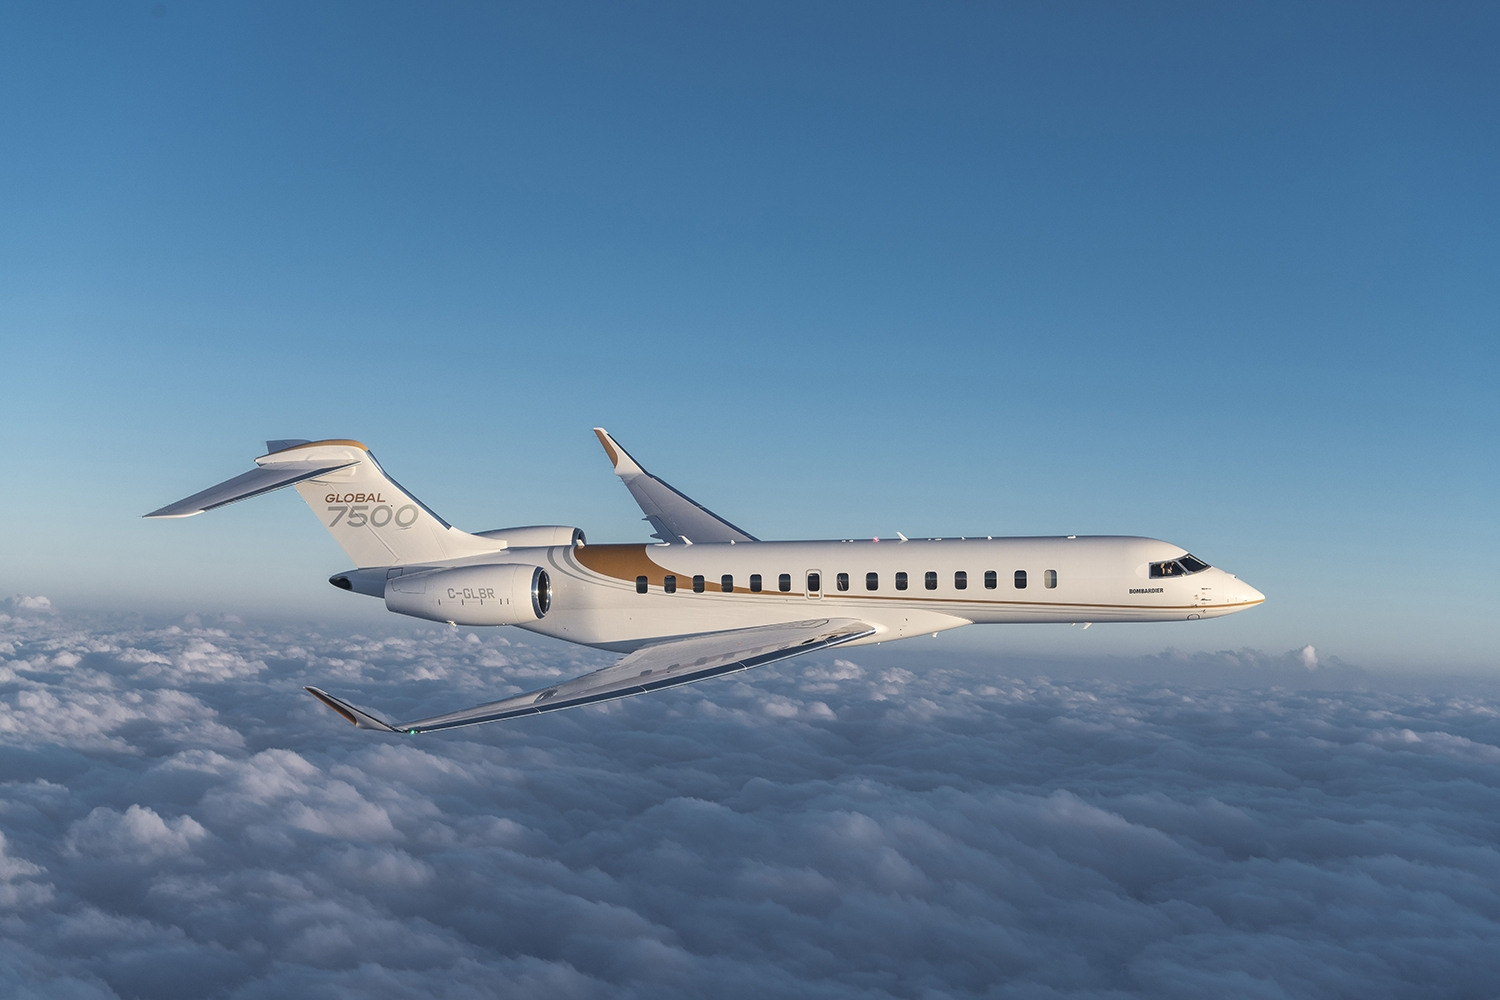 Bombardier Global 7500 private jet